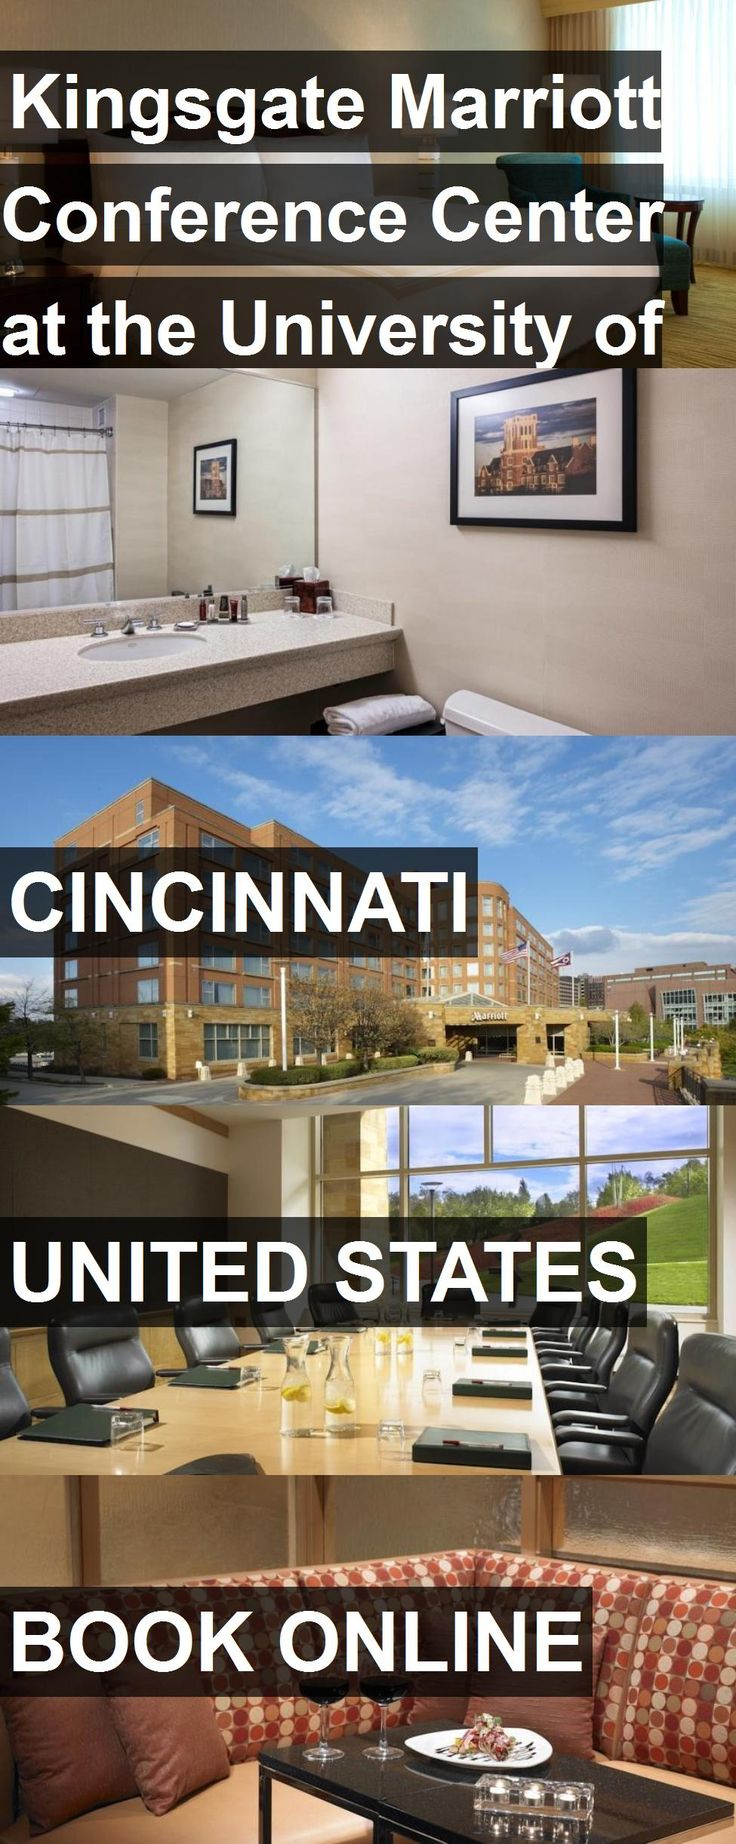 Hotel Kingsgate Marriott Conference Center At The University Of Cincinnati In United States